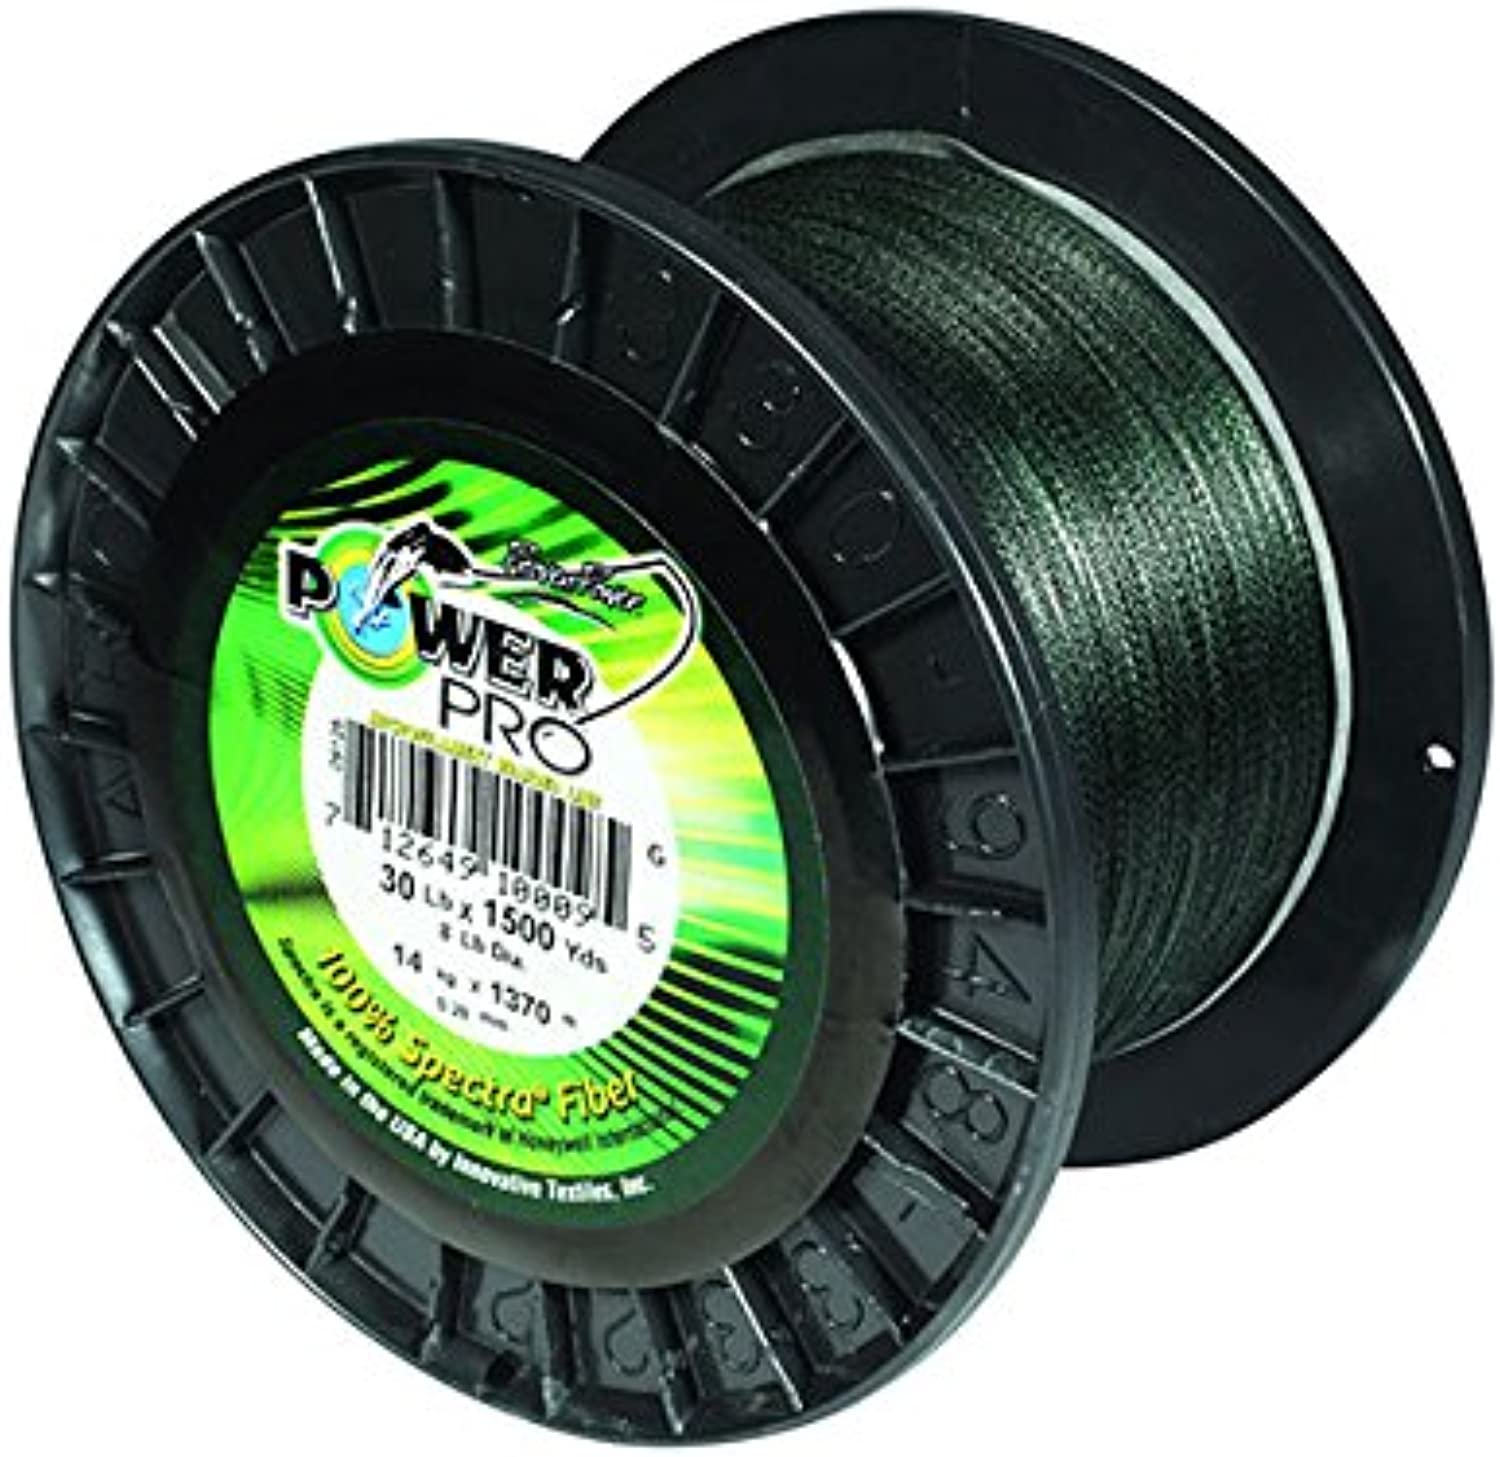 PowerPro Power Pro 21100150500E Braided Spectra Fiber Fishing Line, 15 Lb 500 yd, Moss Green